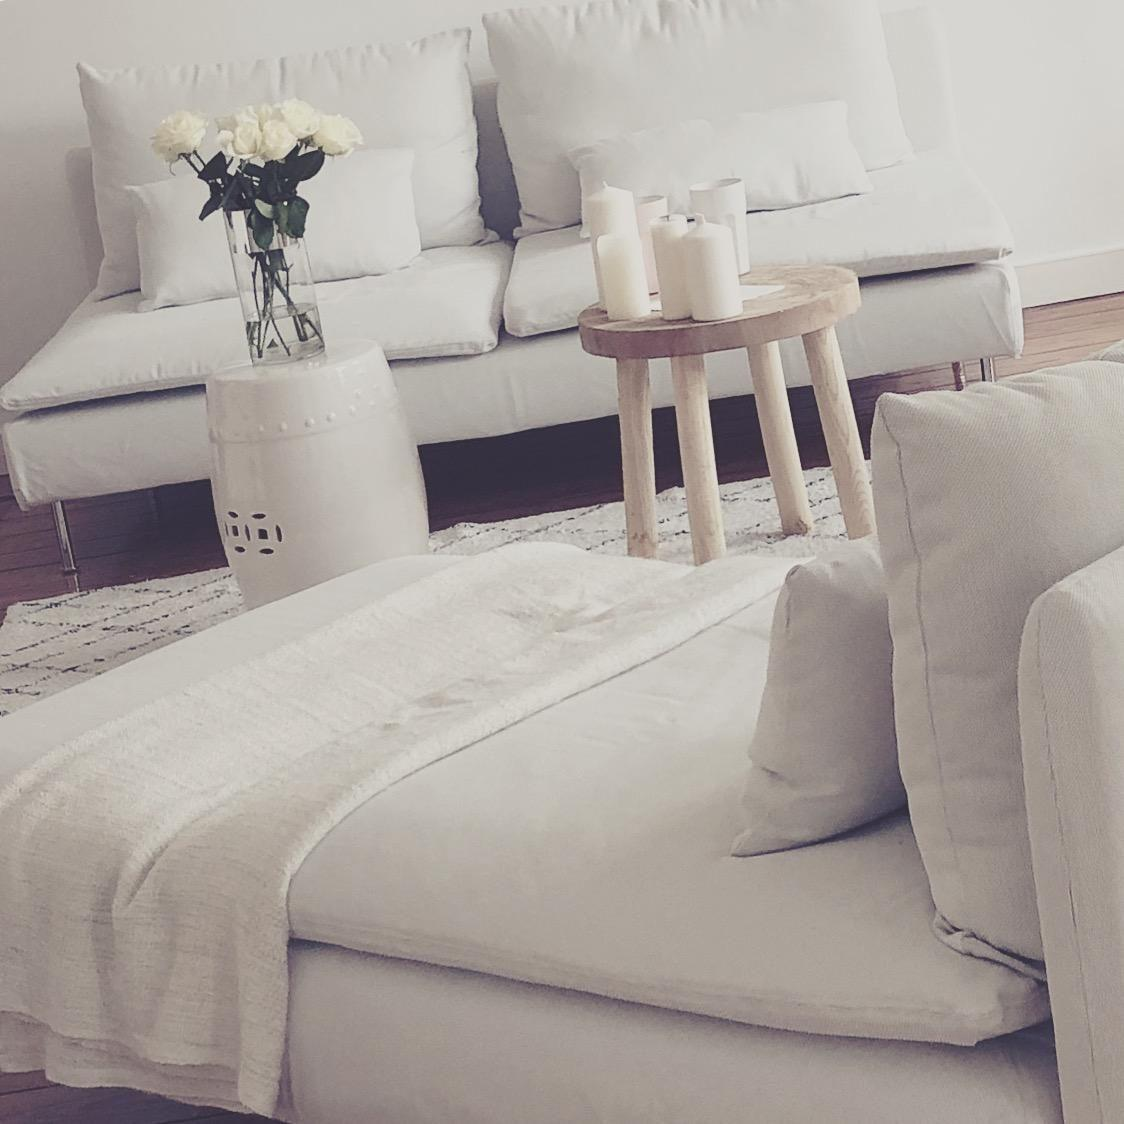 Happy friday  living interior couch home white wohnzimmer altbau flower style cozy  1139a26c b71c 4f12 8c90 860d3abeb1a6